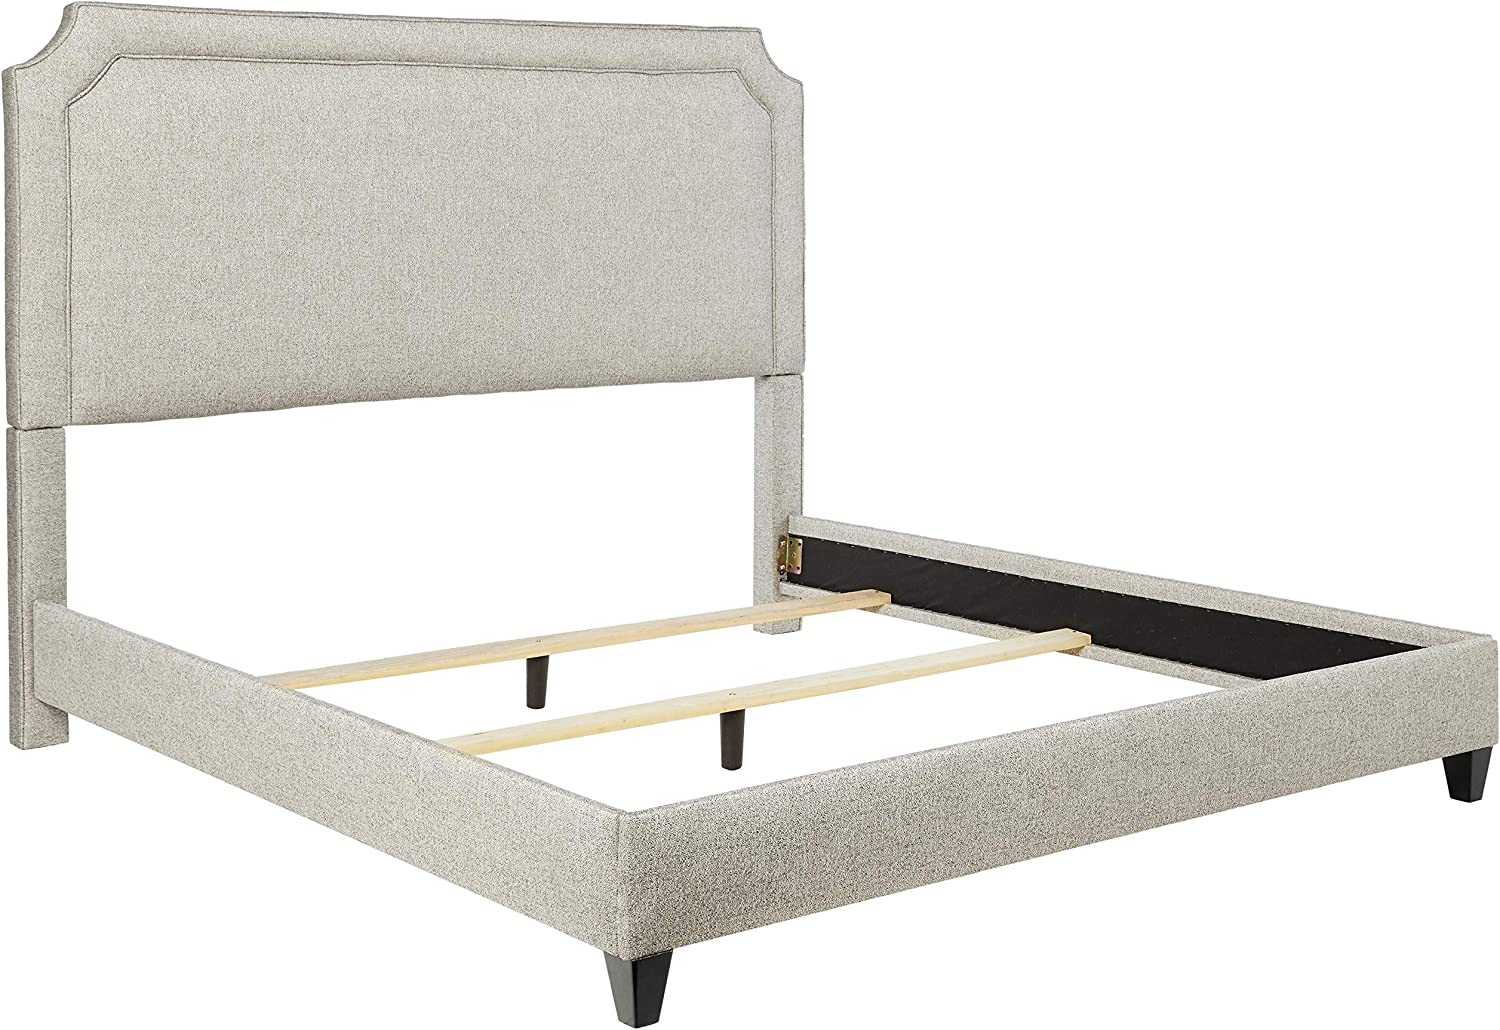 Leffler Home Midori Manor Belgrave Upholstered Bed with Rails and Footboard, King, Black and White